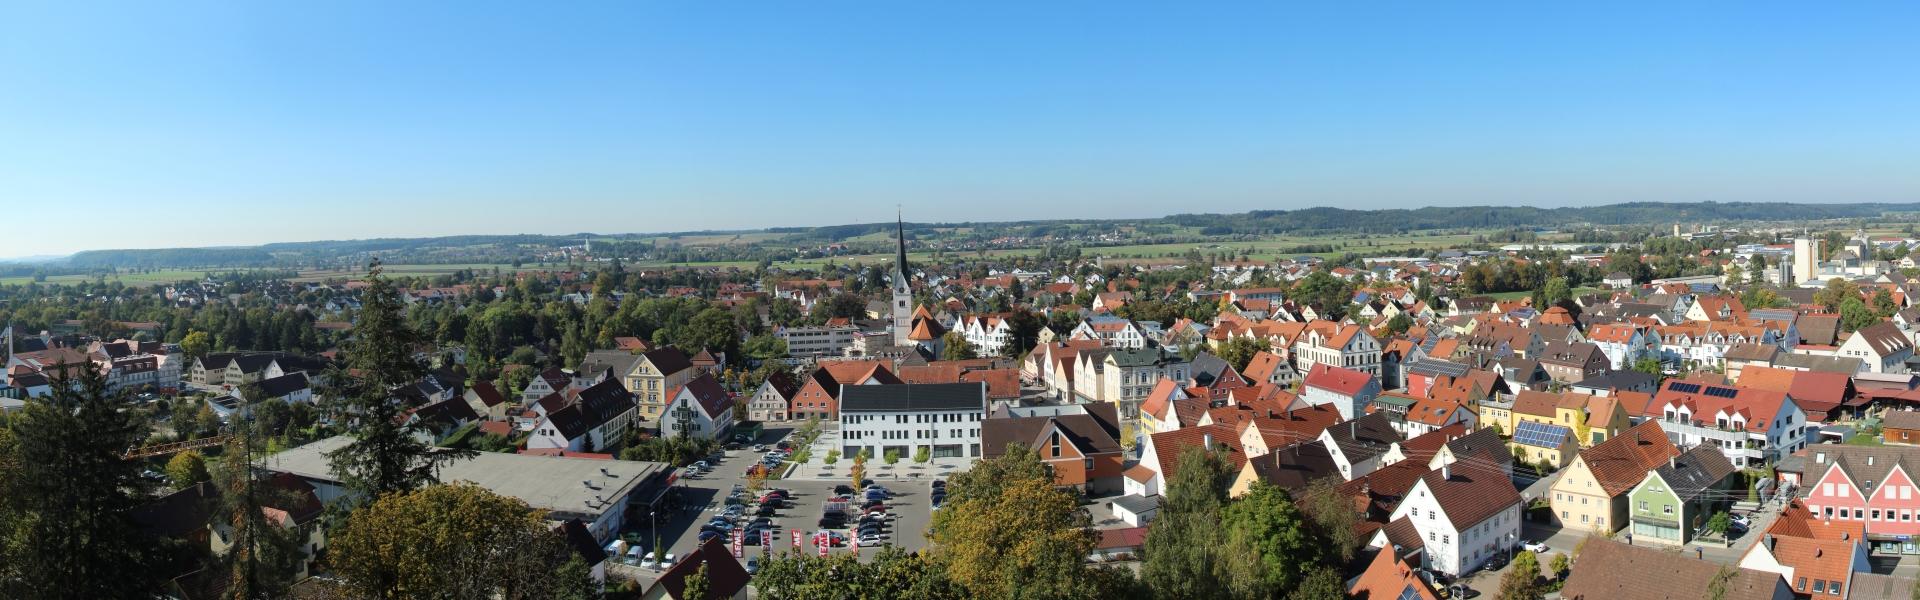 Header Thannhausen 004